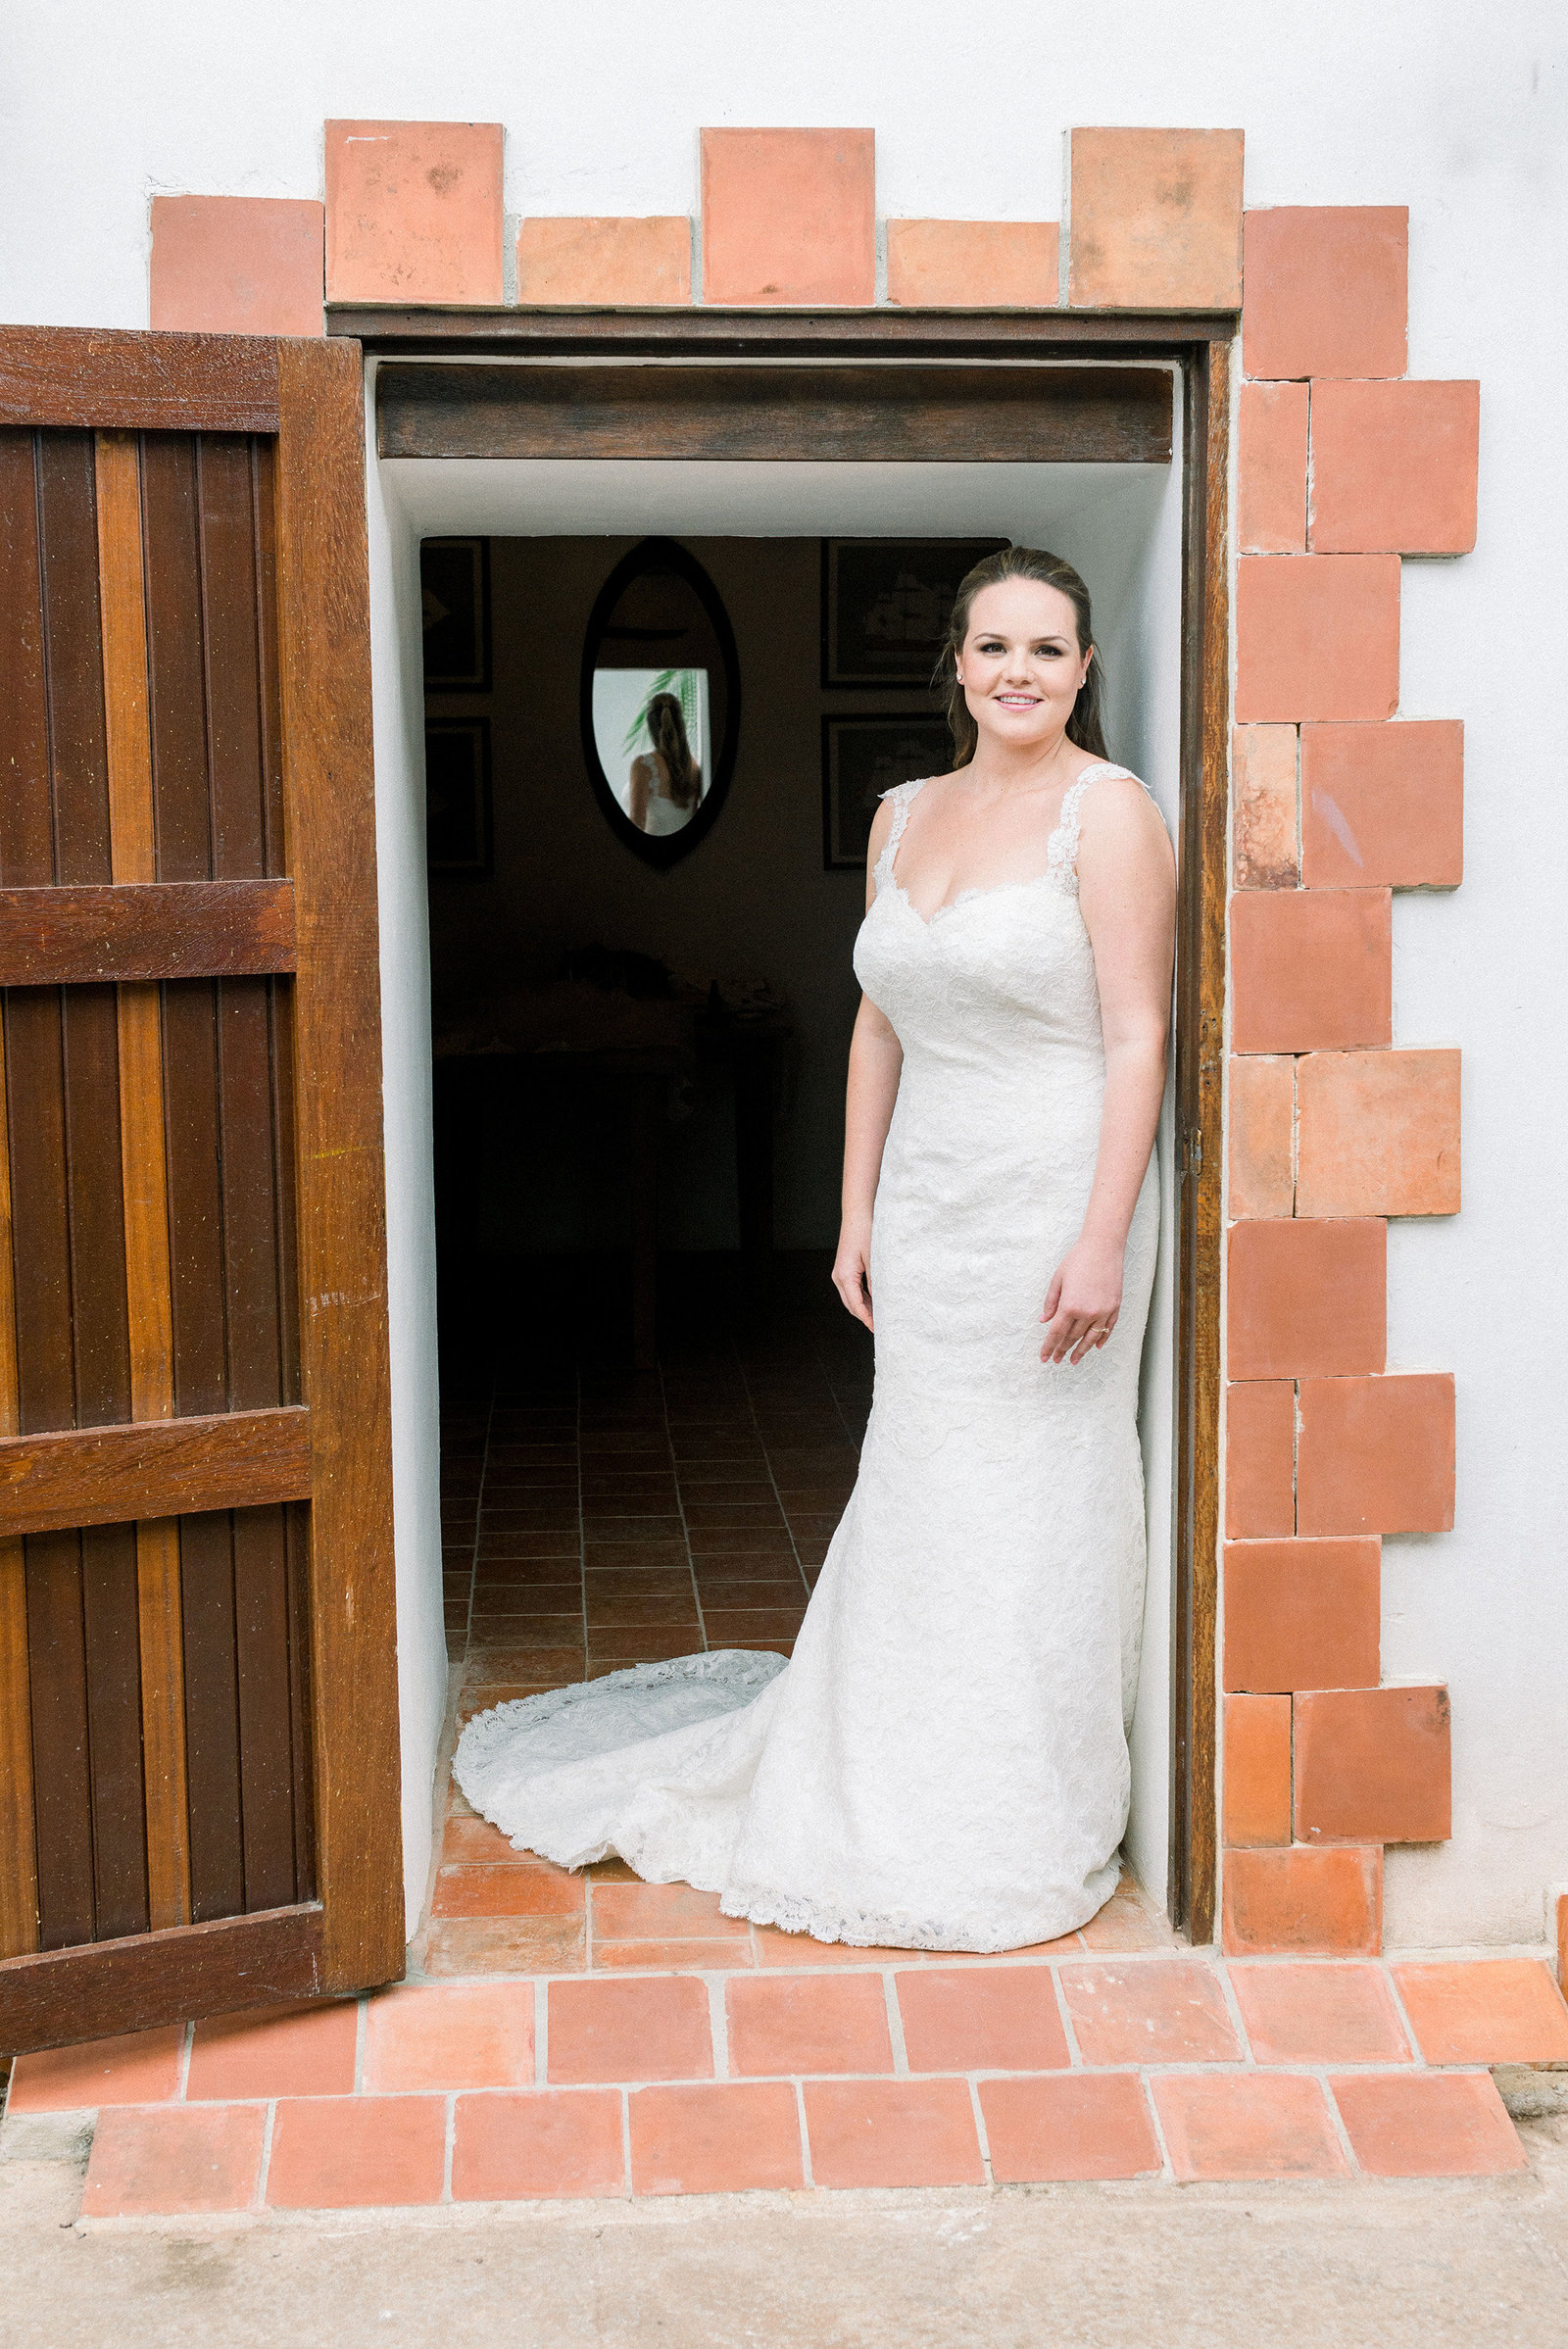 20150328-Pura-Soul-Photo-Cuba-Wedding-22